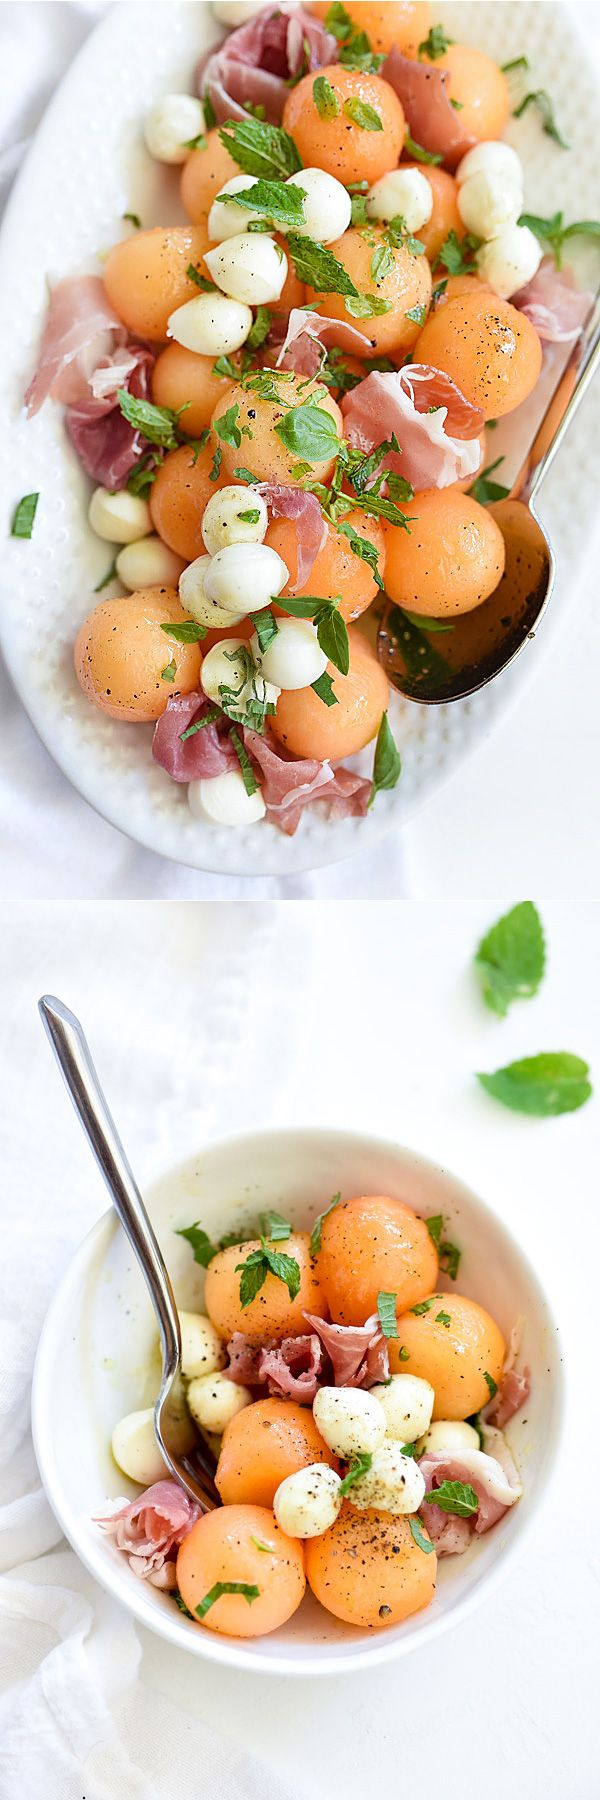 Cantaloupe and Mozzarella Caprese Salad